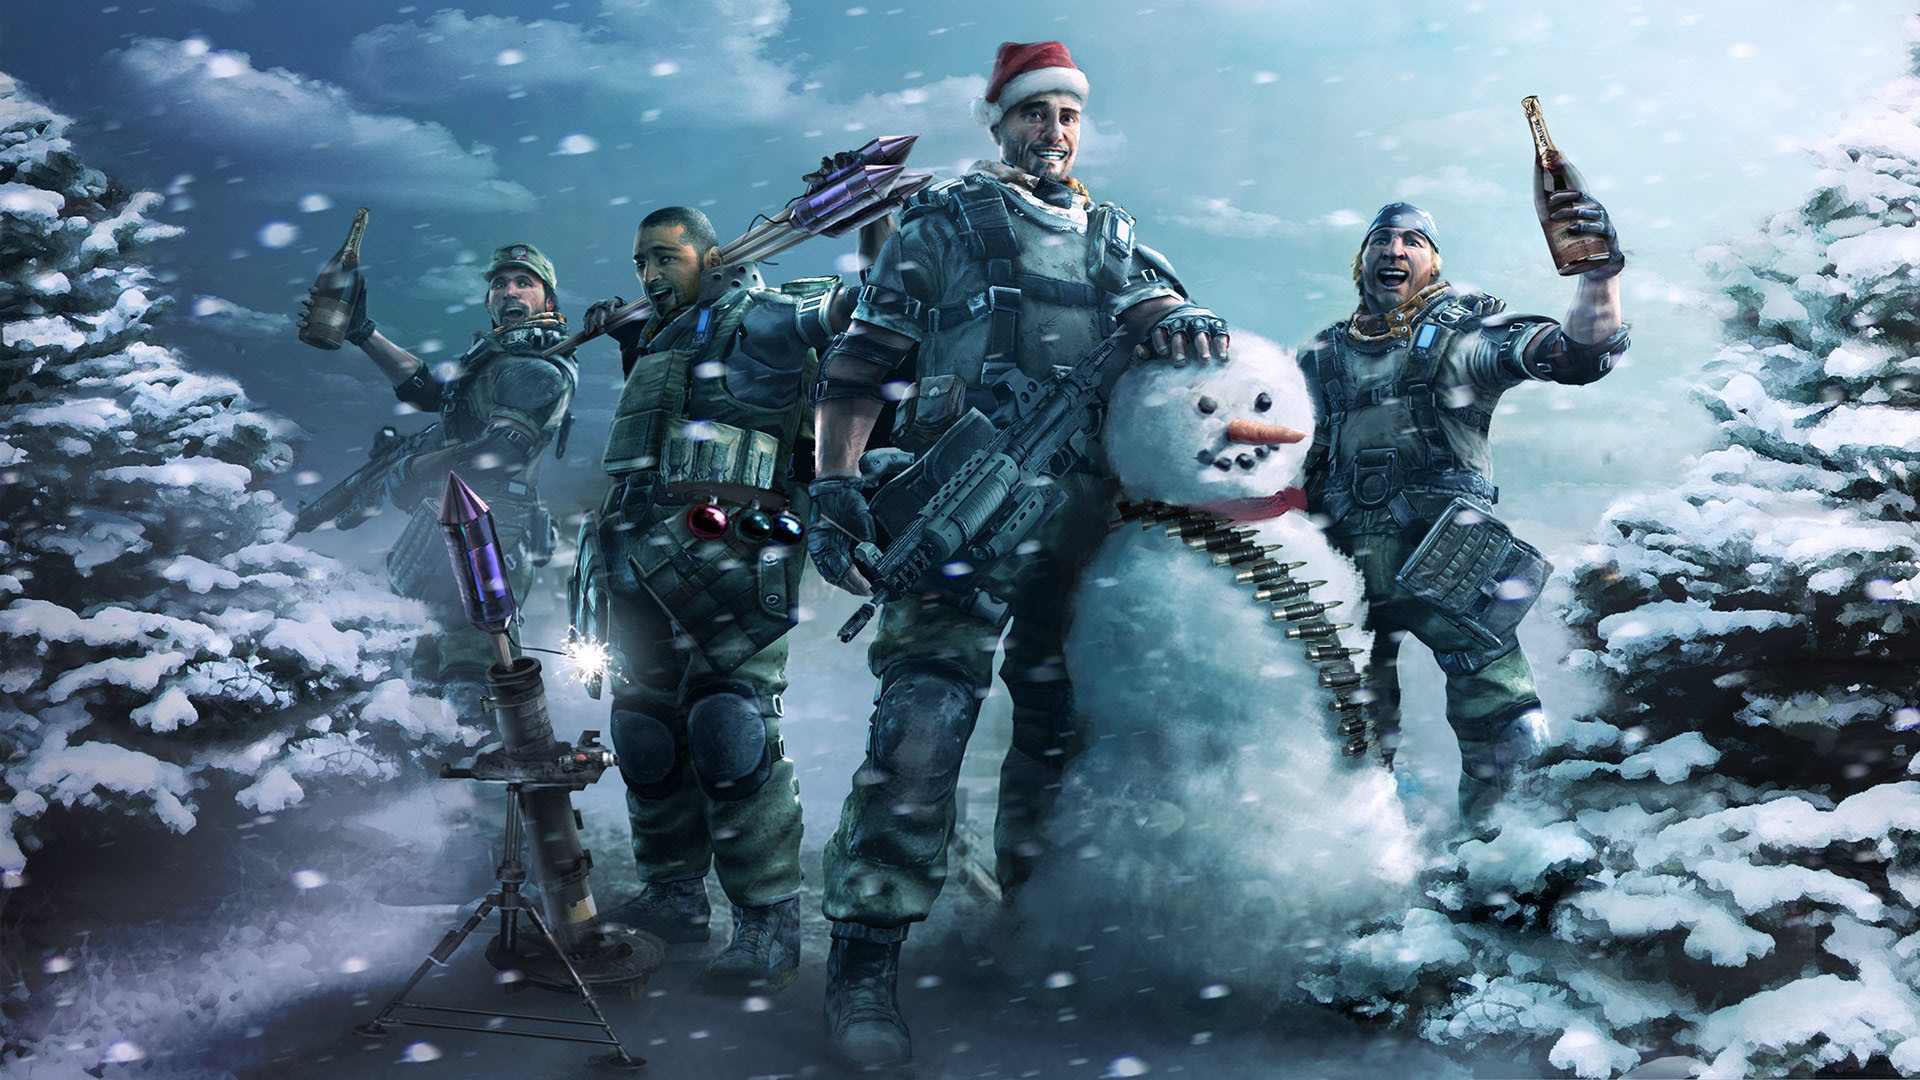 Games Wallpapers Free HD: PC Game Wallpaper